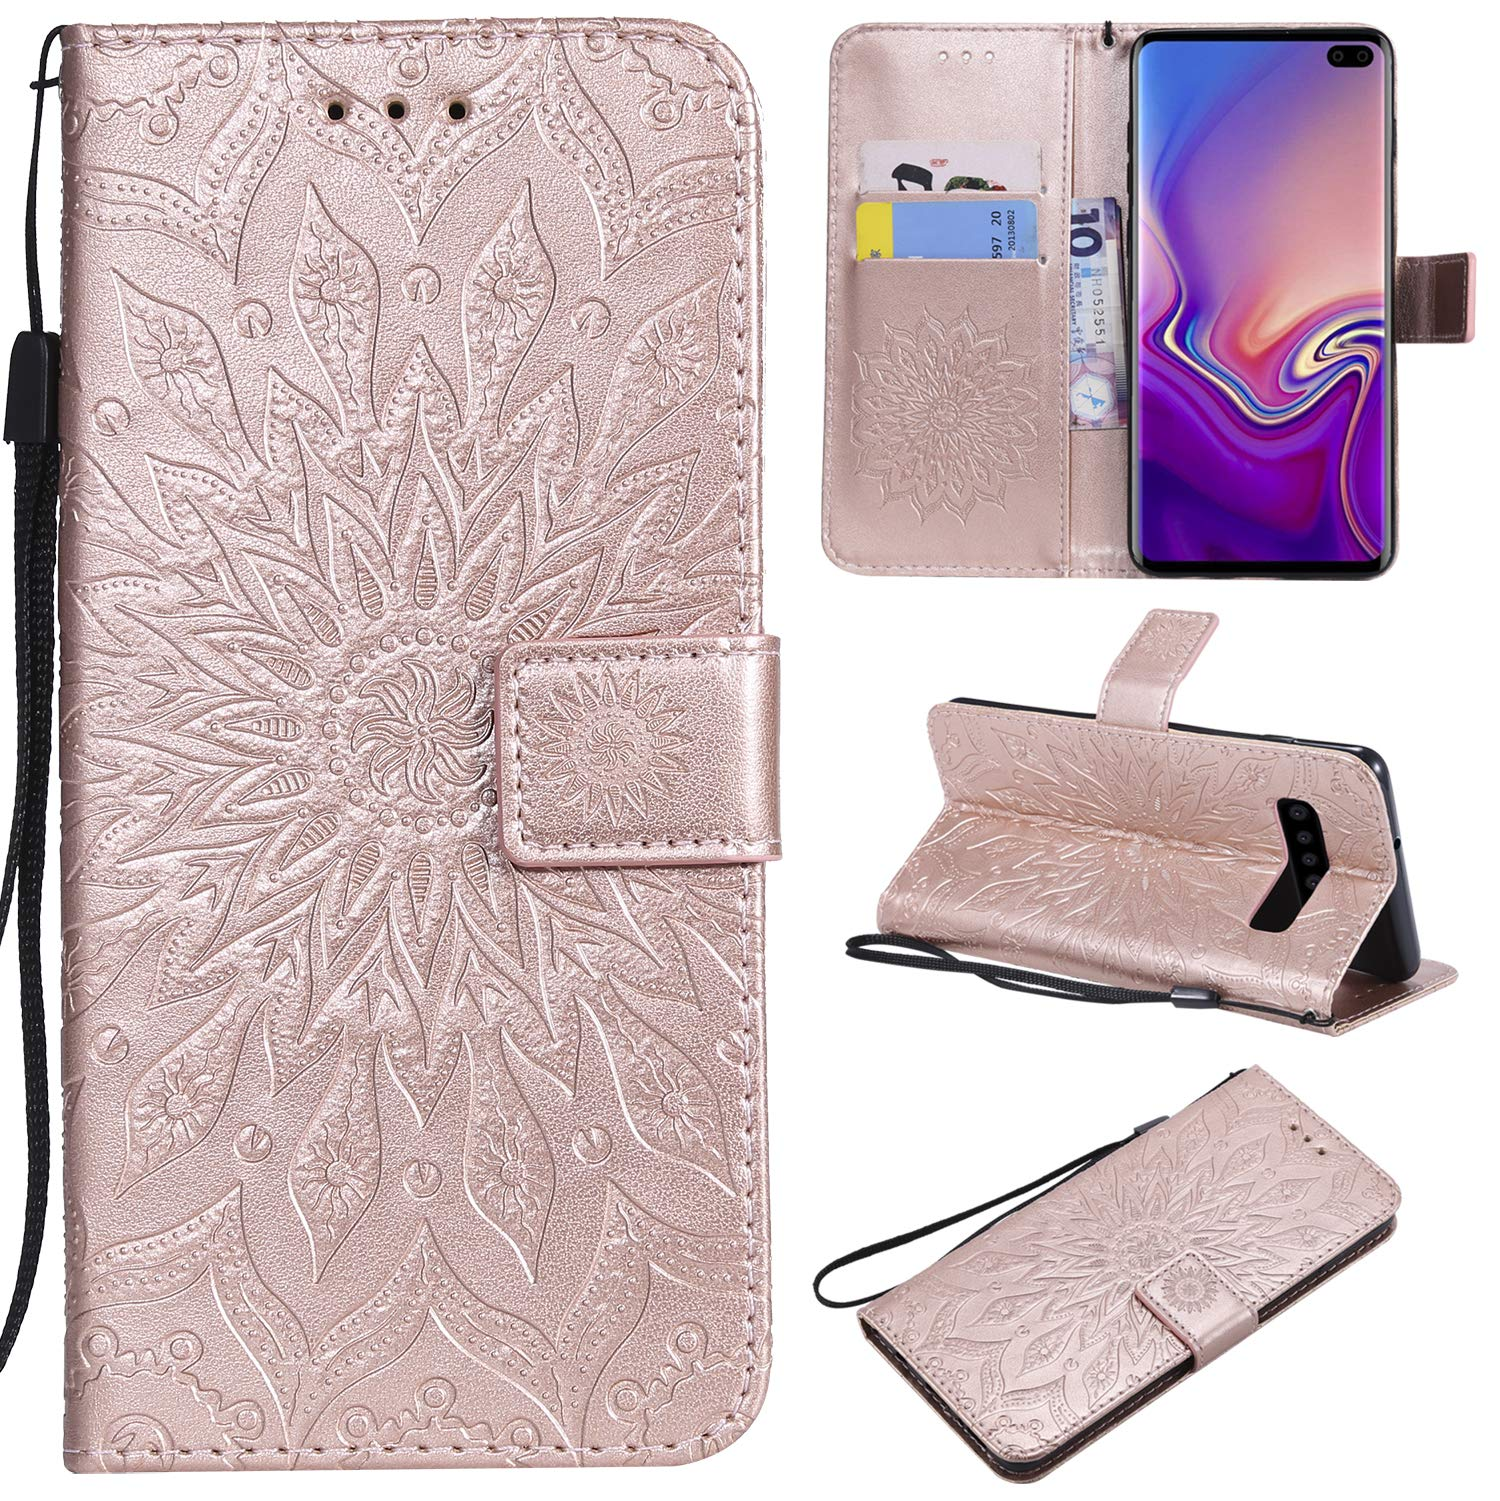 Galaxy S10 Plus Case,Samsung S10 Plus Case,Wallet Case,PU Leather Case Sun Flower Pattern Embossed Purse with Kickstand Flip Cover Card Holders Hand Strap for Samsung Galaxy S10 Plus Rose Gold